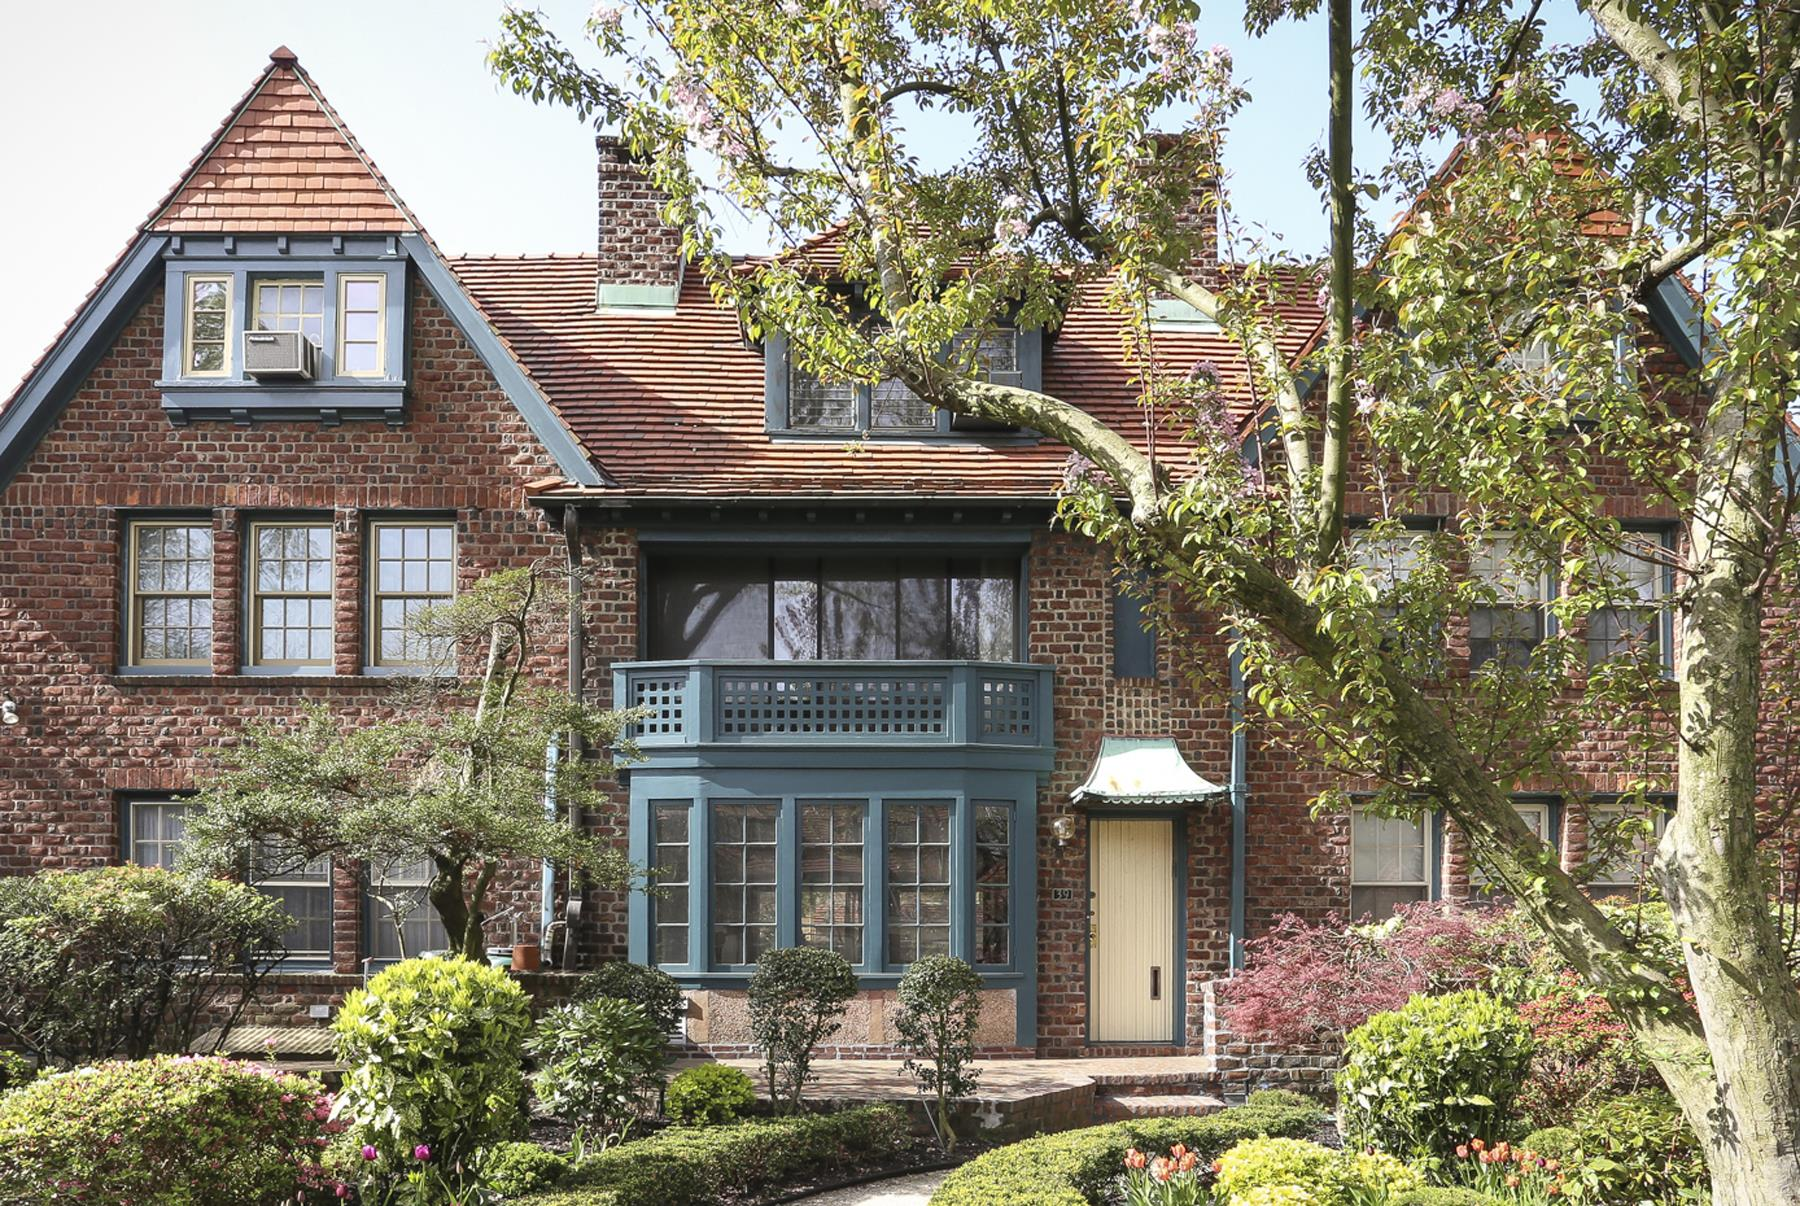 Additional Photo For Property Listing At 39 INGRAM STREET, FOREST HILLS  GARDENS, NYC 39